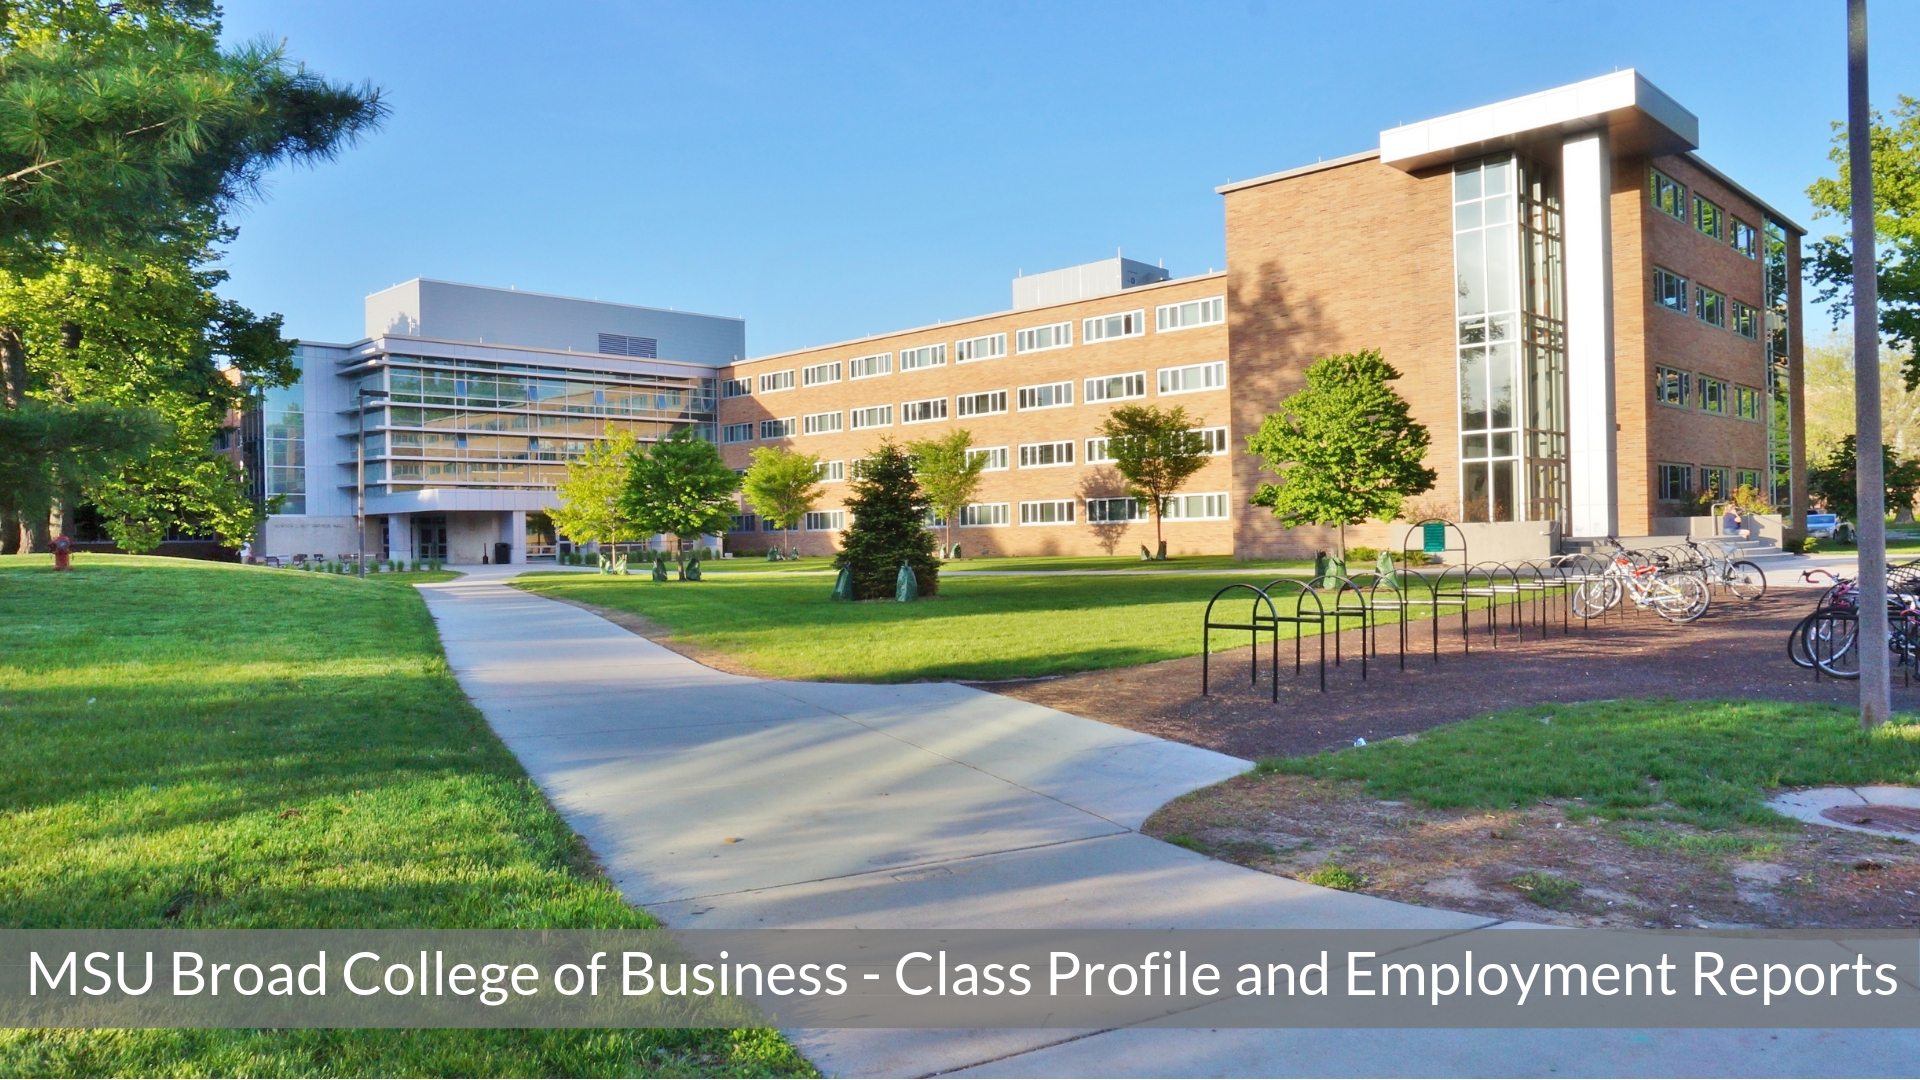 Broad College of Business - MSU MBA Program - Class Profile, Employment Reports and Notable Alumni - Broad School of Business